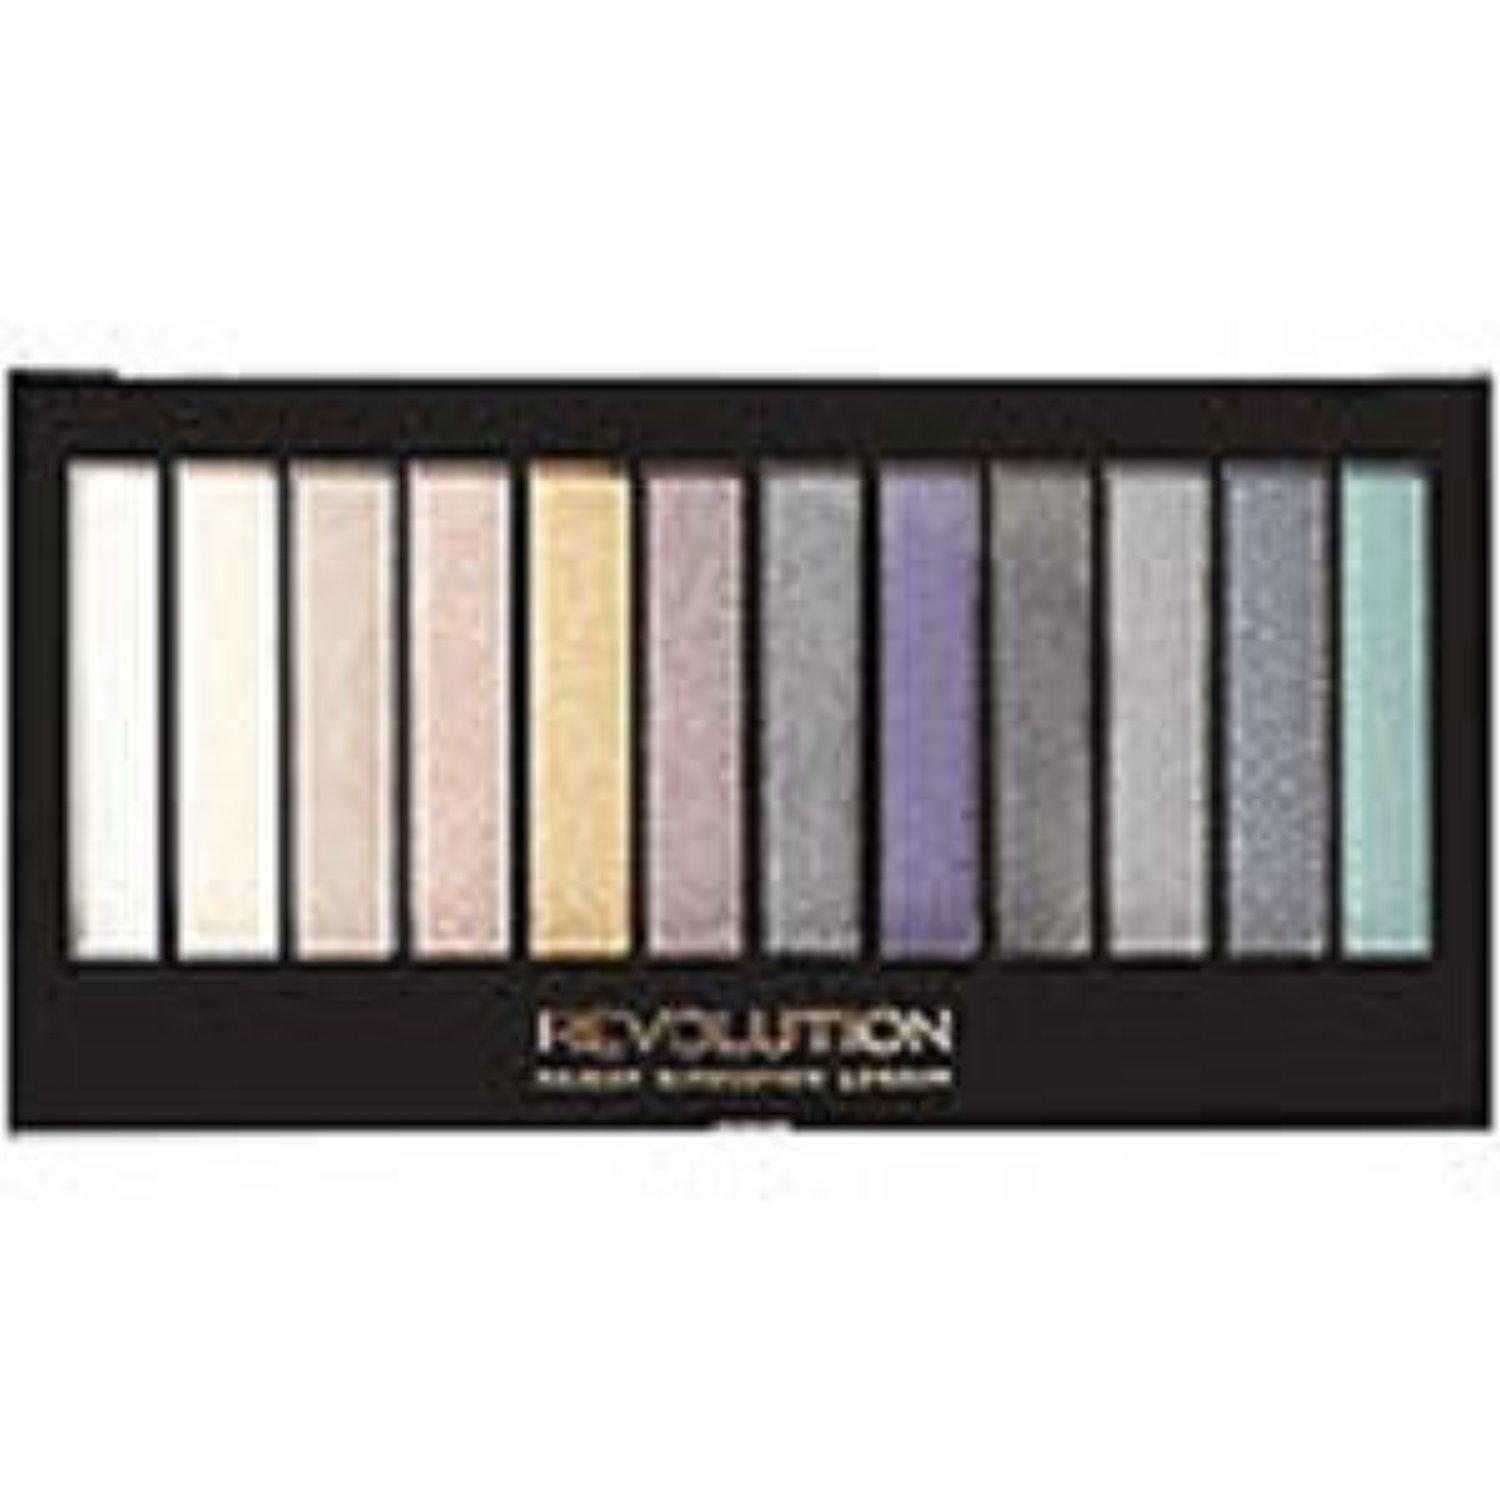 Makeup Revolution Essential Day To Night Eyeshadow Palette